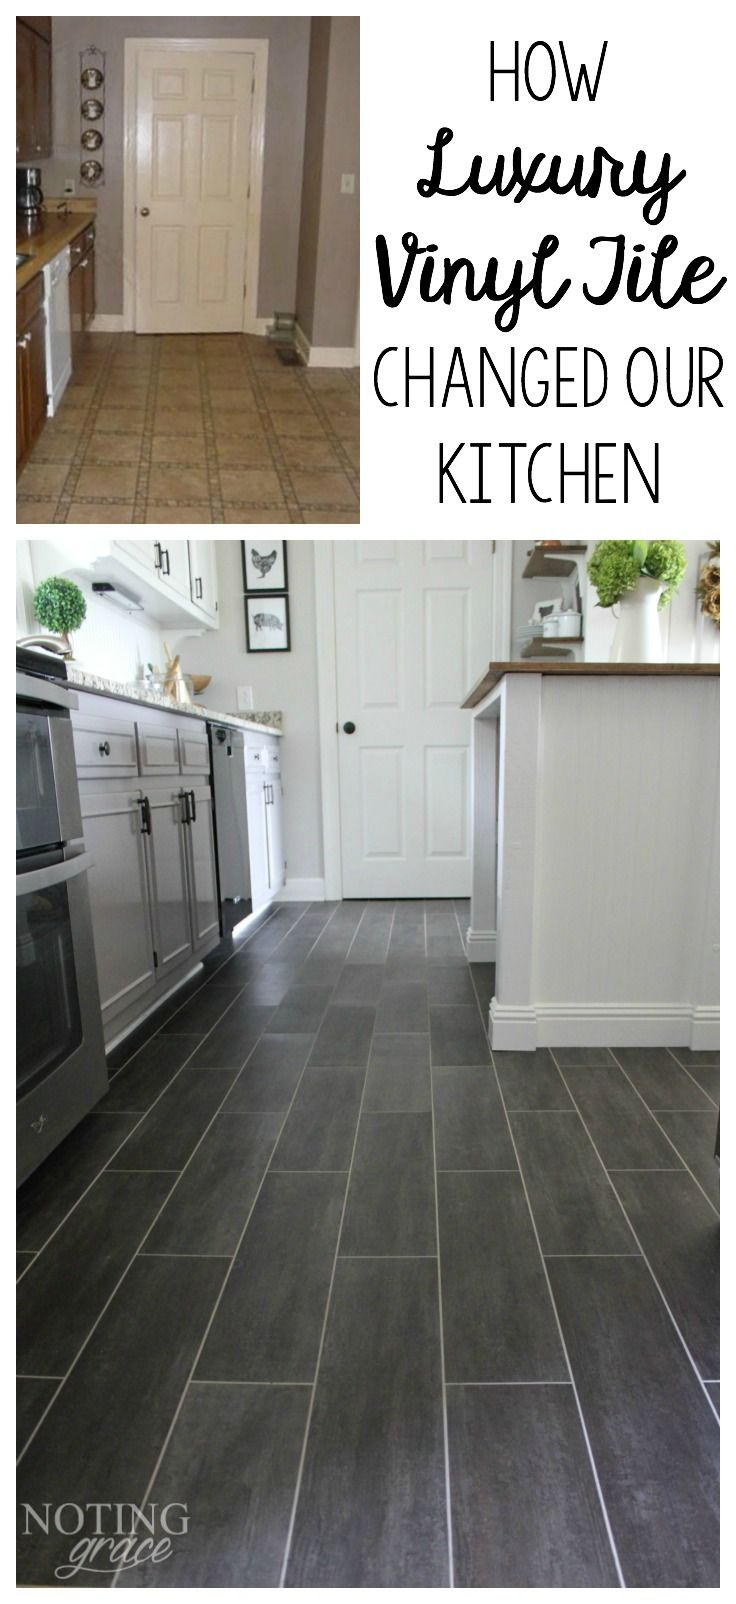 Restaurant Kitchen Flooring Options 17 Best Ideas About Kitchen Flooring On Pinterest Kitchen Floors